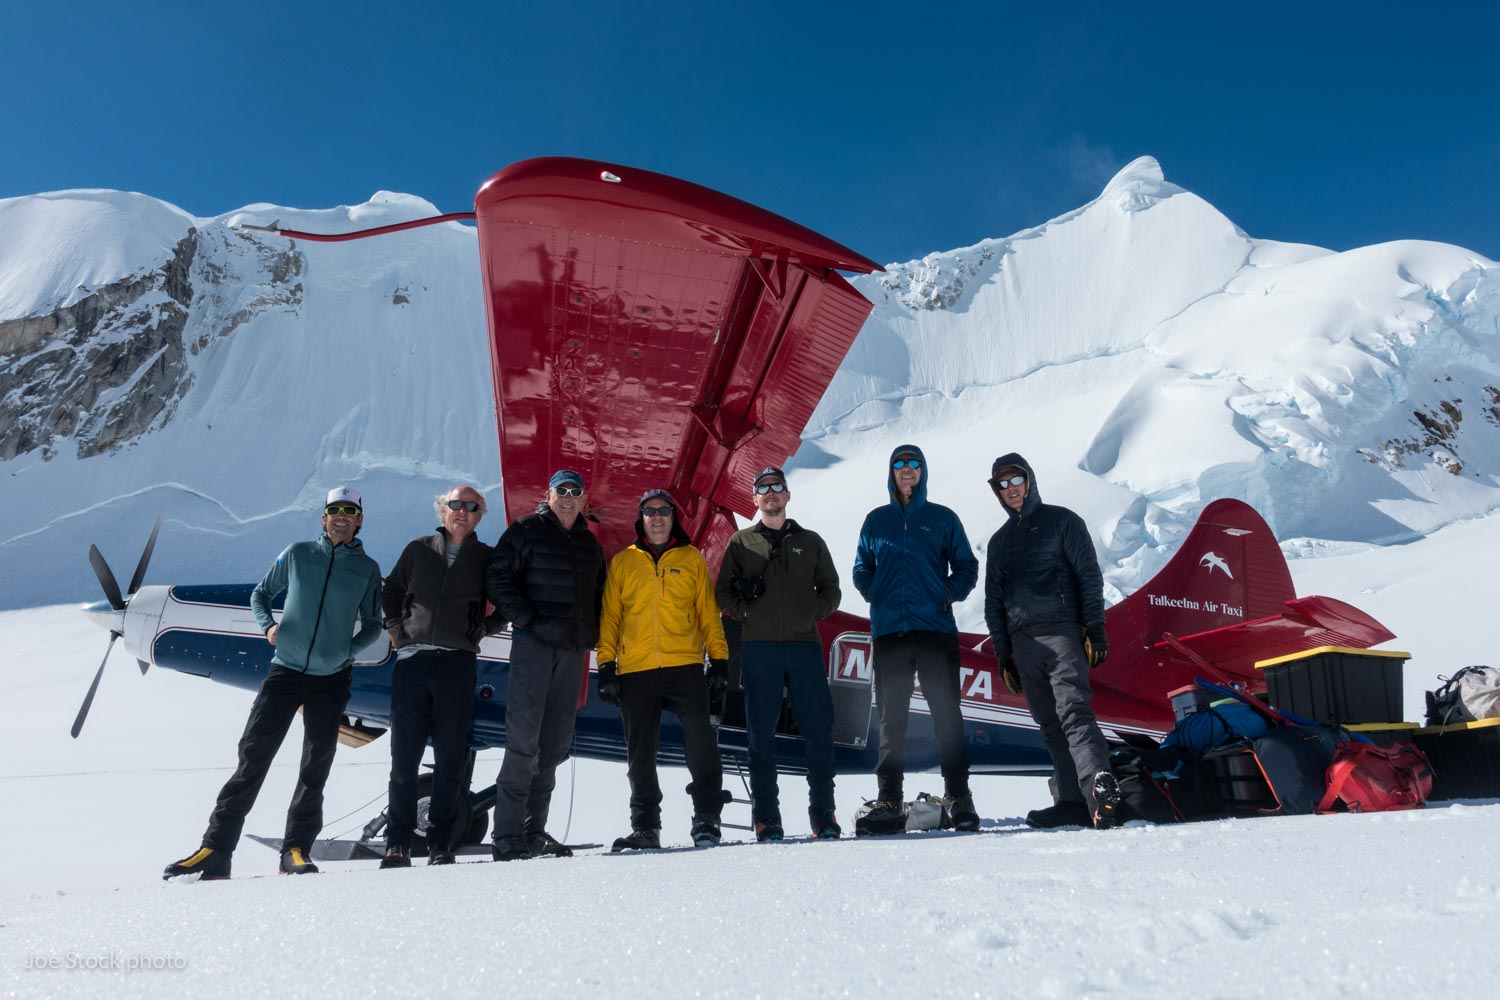 Joe, pilot Paul Roderick, James Kesterson, Paul Muscat, Matt Sanborn, Glenn Wilson and Elliot Gaddy at our landing strip on the Yentna Glacier.  Glenn, James, Paul and I have been going on trips together for the past 22 years: Denali, Mount Baker, Mount Logan, Mount Marcus Baker, Iliamna Volcano, Bolivia, Ecuador, Peru, Talkeetna Mountains, Chigmit Mountains, Arctic Refuge and now the Yentna Glacier. Matt is a new recruit to the team, a workmate of Paul's, and Elliot is my business partner at  Alaska Guide Collective .